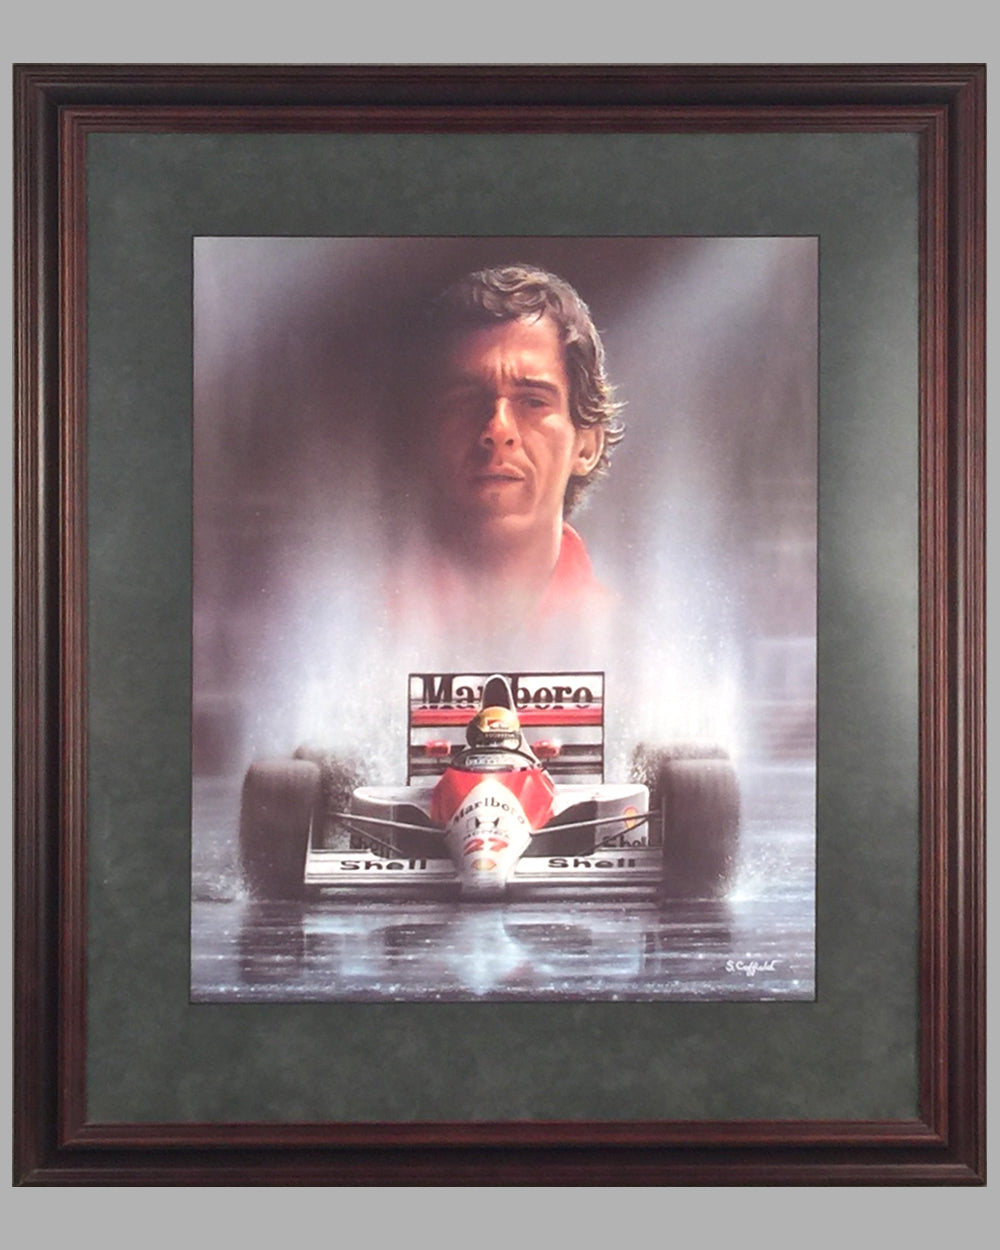 Homage to Ayrton Senna print by Stuart Coffield